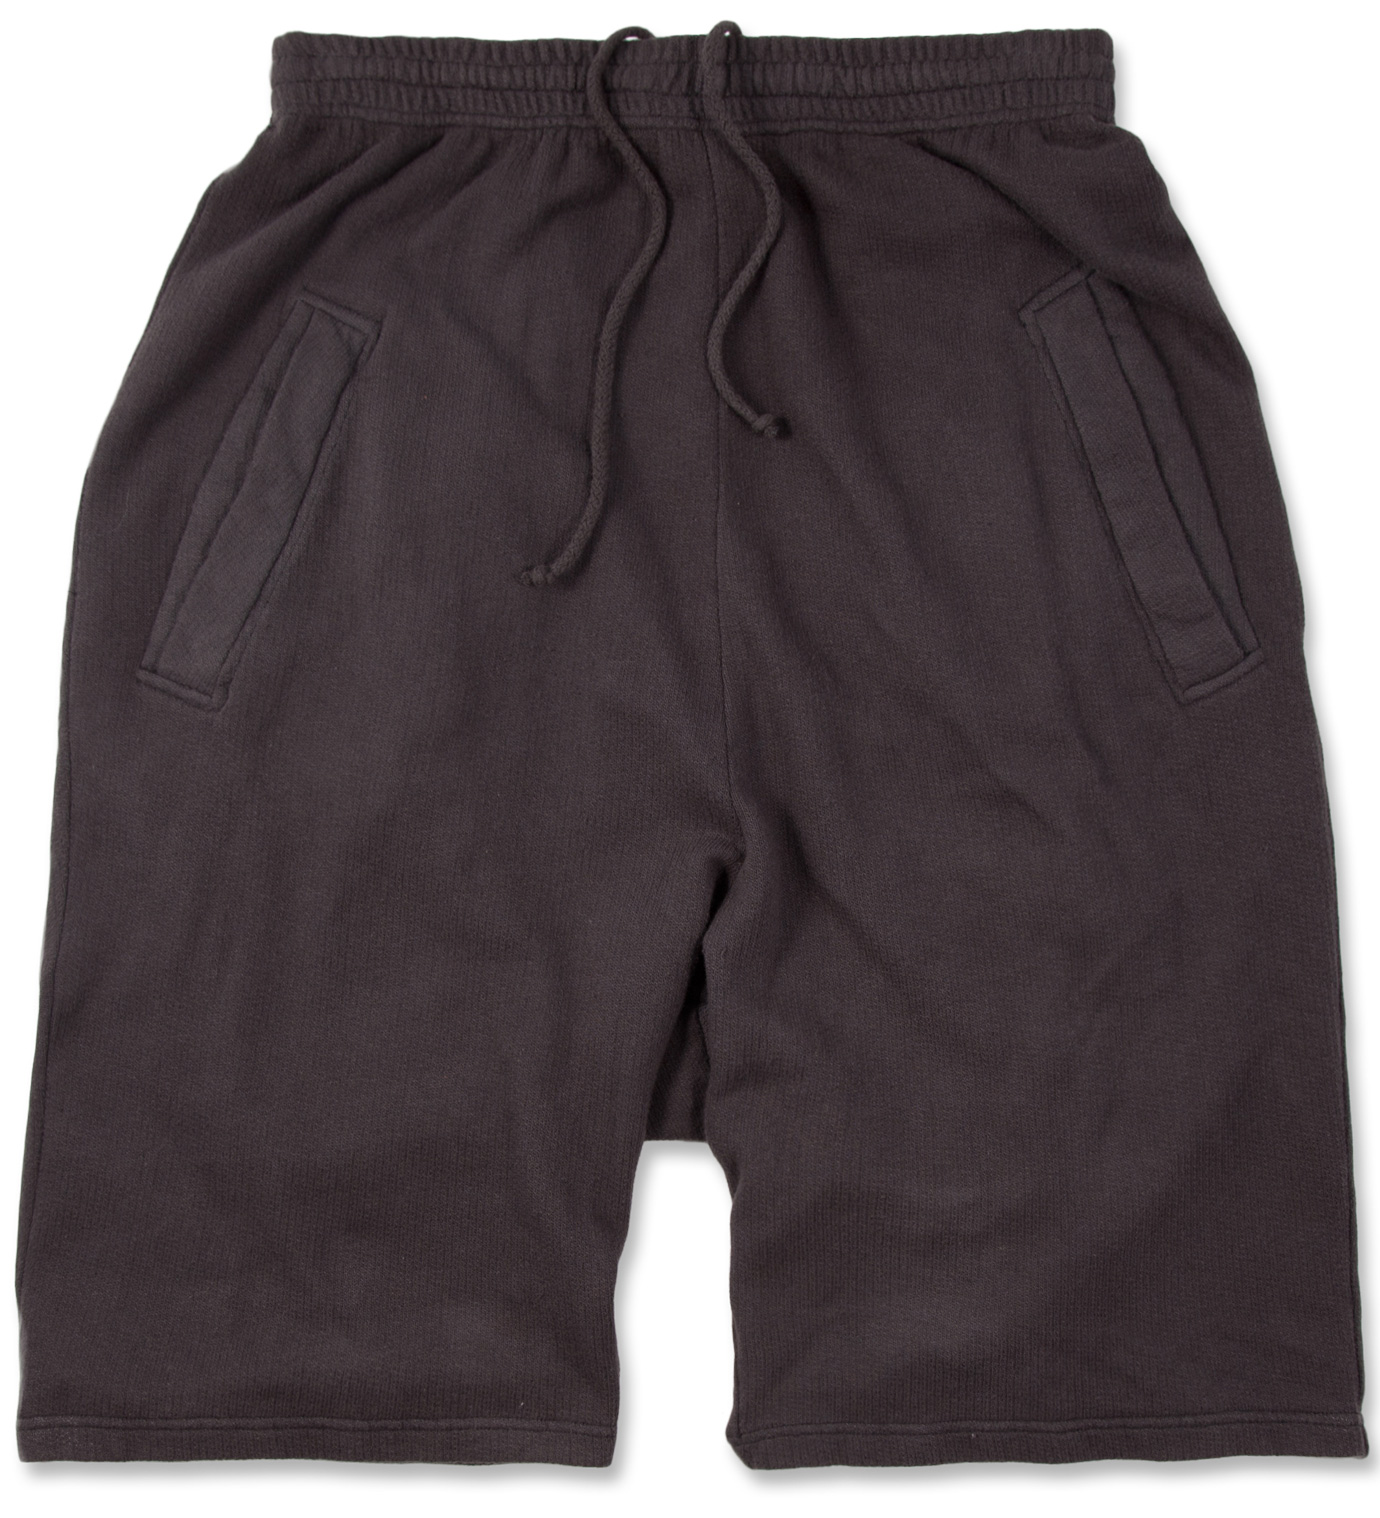 SILENT DAMIR DOMA Brown Ashes Porss Heavy Jersey Shorts